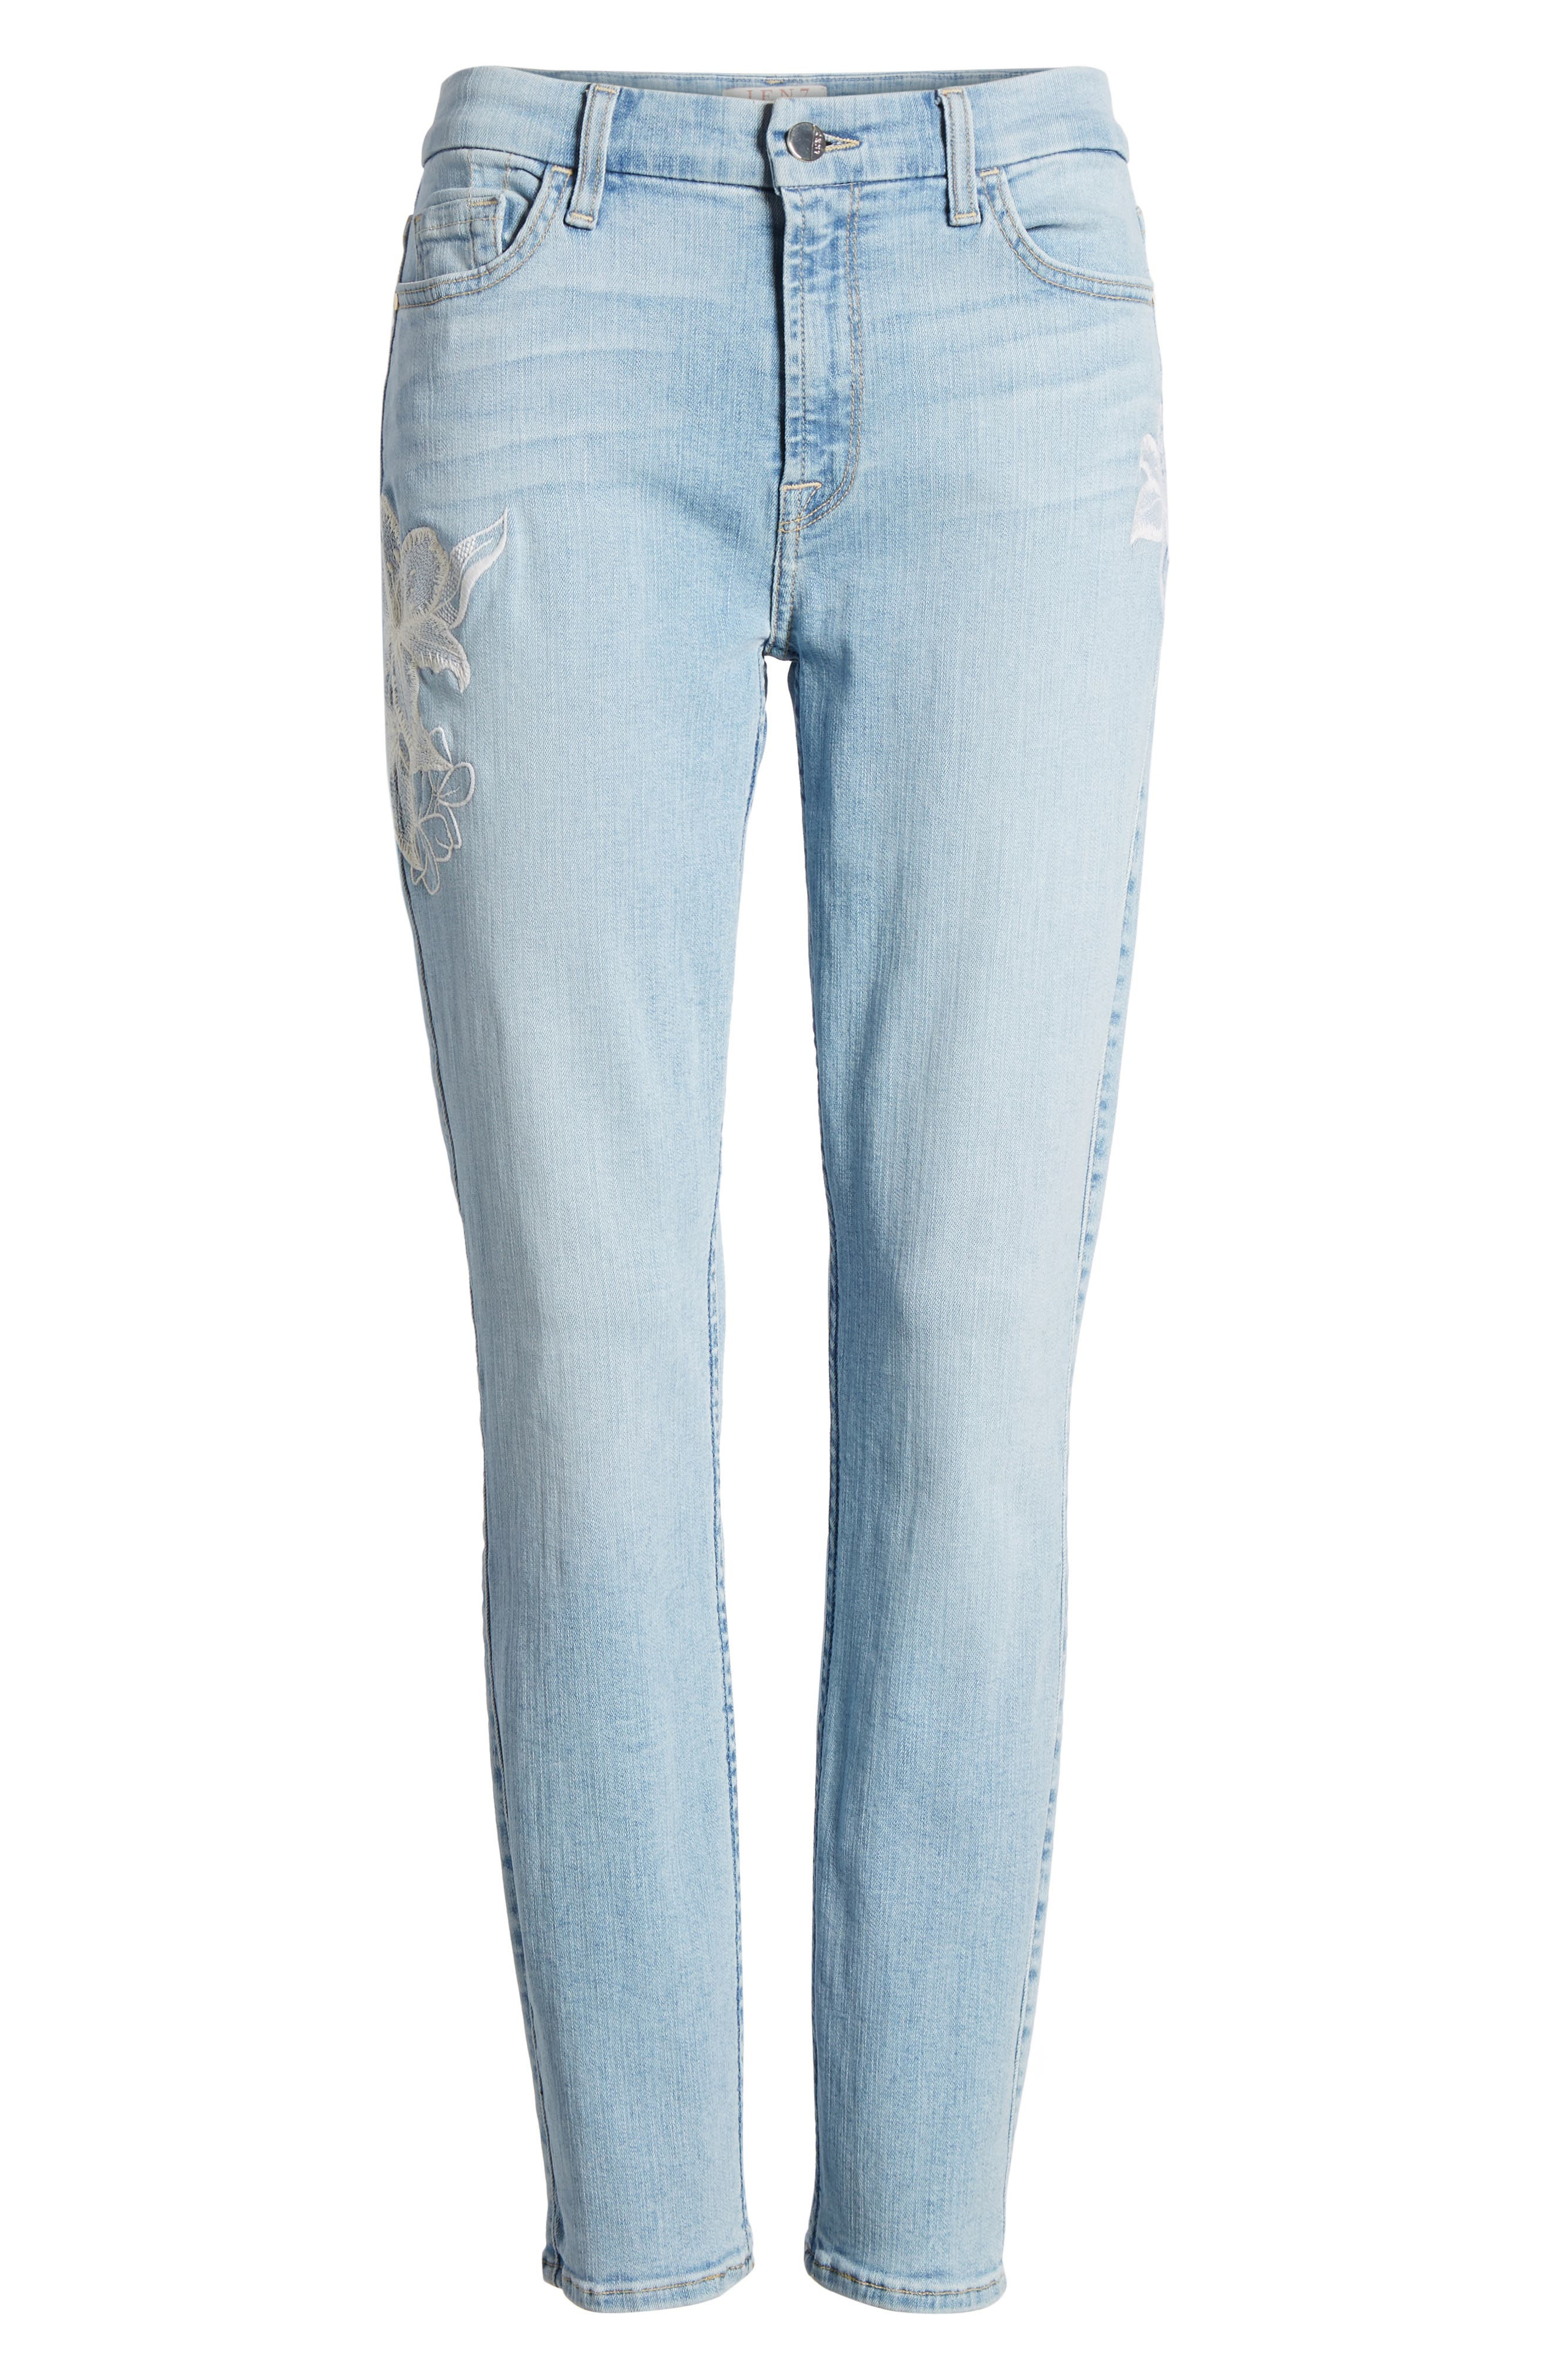 JEN7 BY 7 FOR ALL MANKIND, Embroidered Stretch Ankle Skinny Jeans, Alternate thumbnail 7, color, RICHE TOUCH PLAYA VISTA